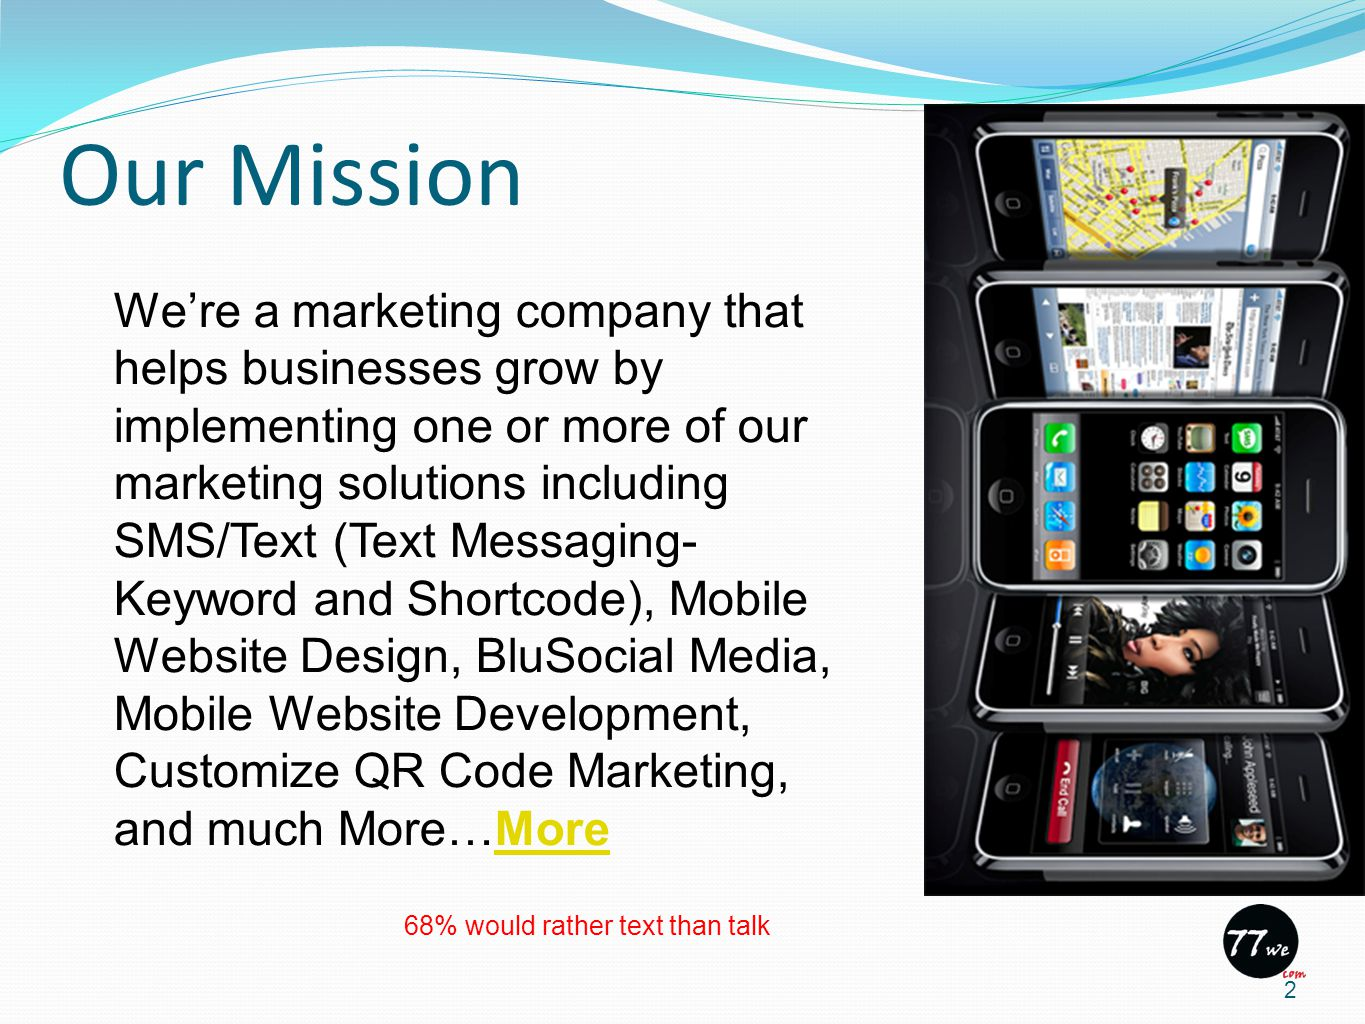 Our Mission 2 We're a marketing company that helps businesses grow by implementing one or more of our marketing solutions including SMS/Text (Text Messaging- Keyword and Shortcode), Mobile Website Design, BluSocial Media, Mobile Website Development, Customize QR Code Marketing, and much More…MoreMore 68% would rather text than talk